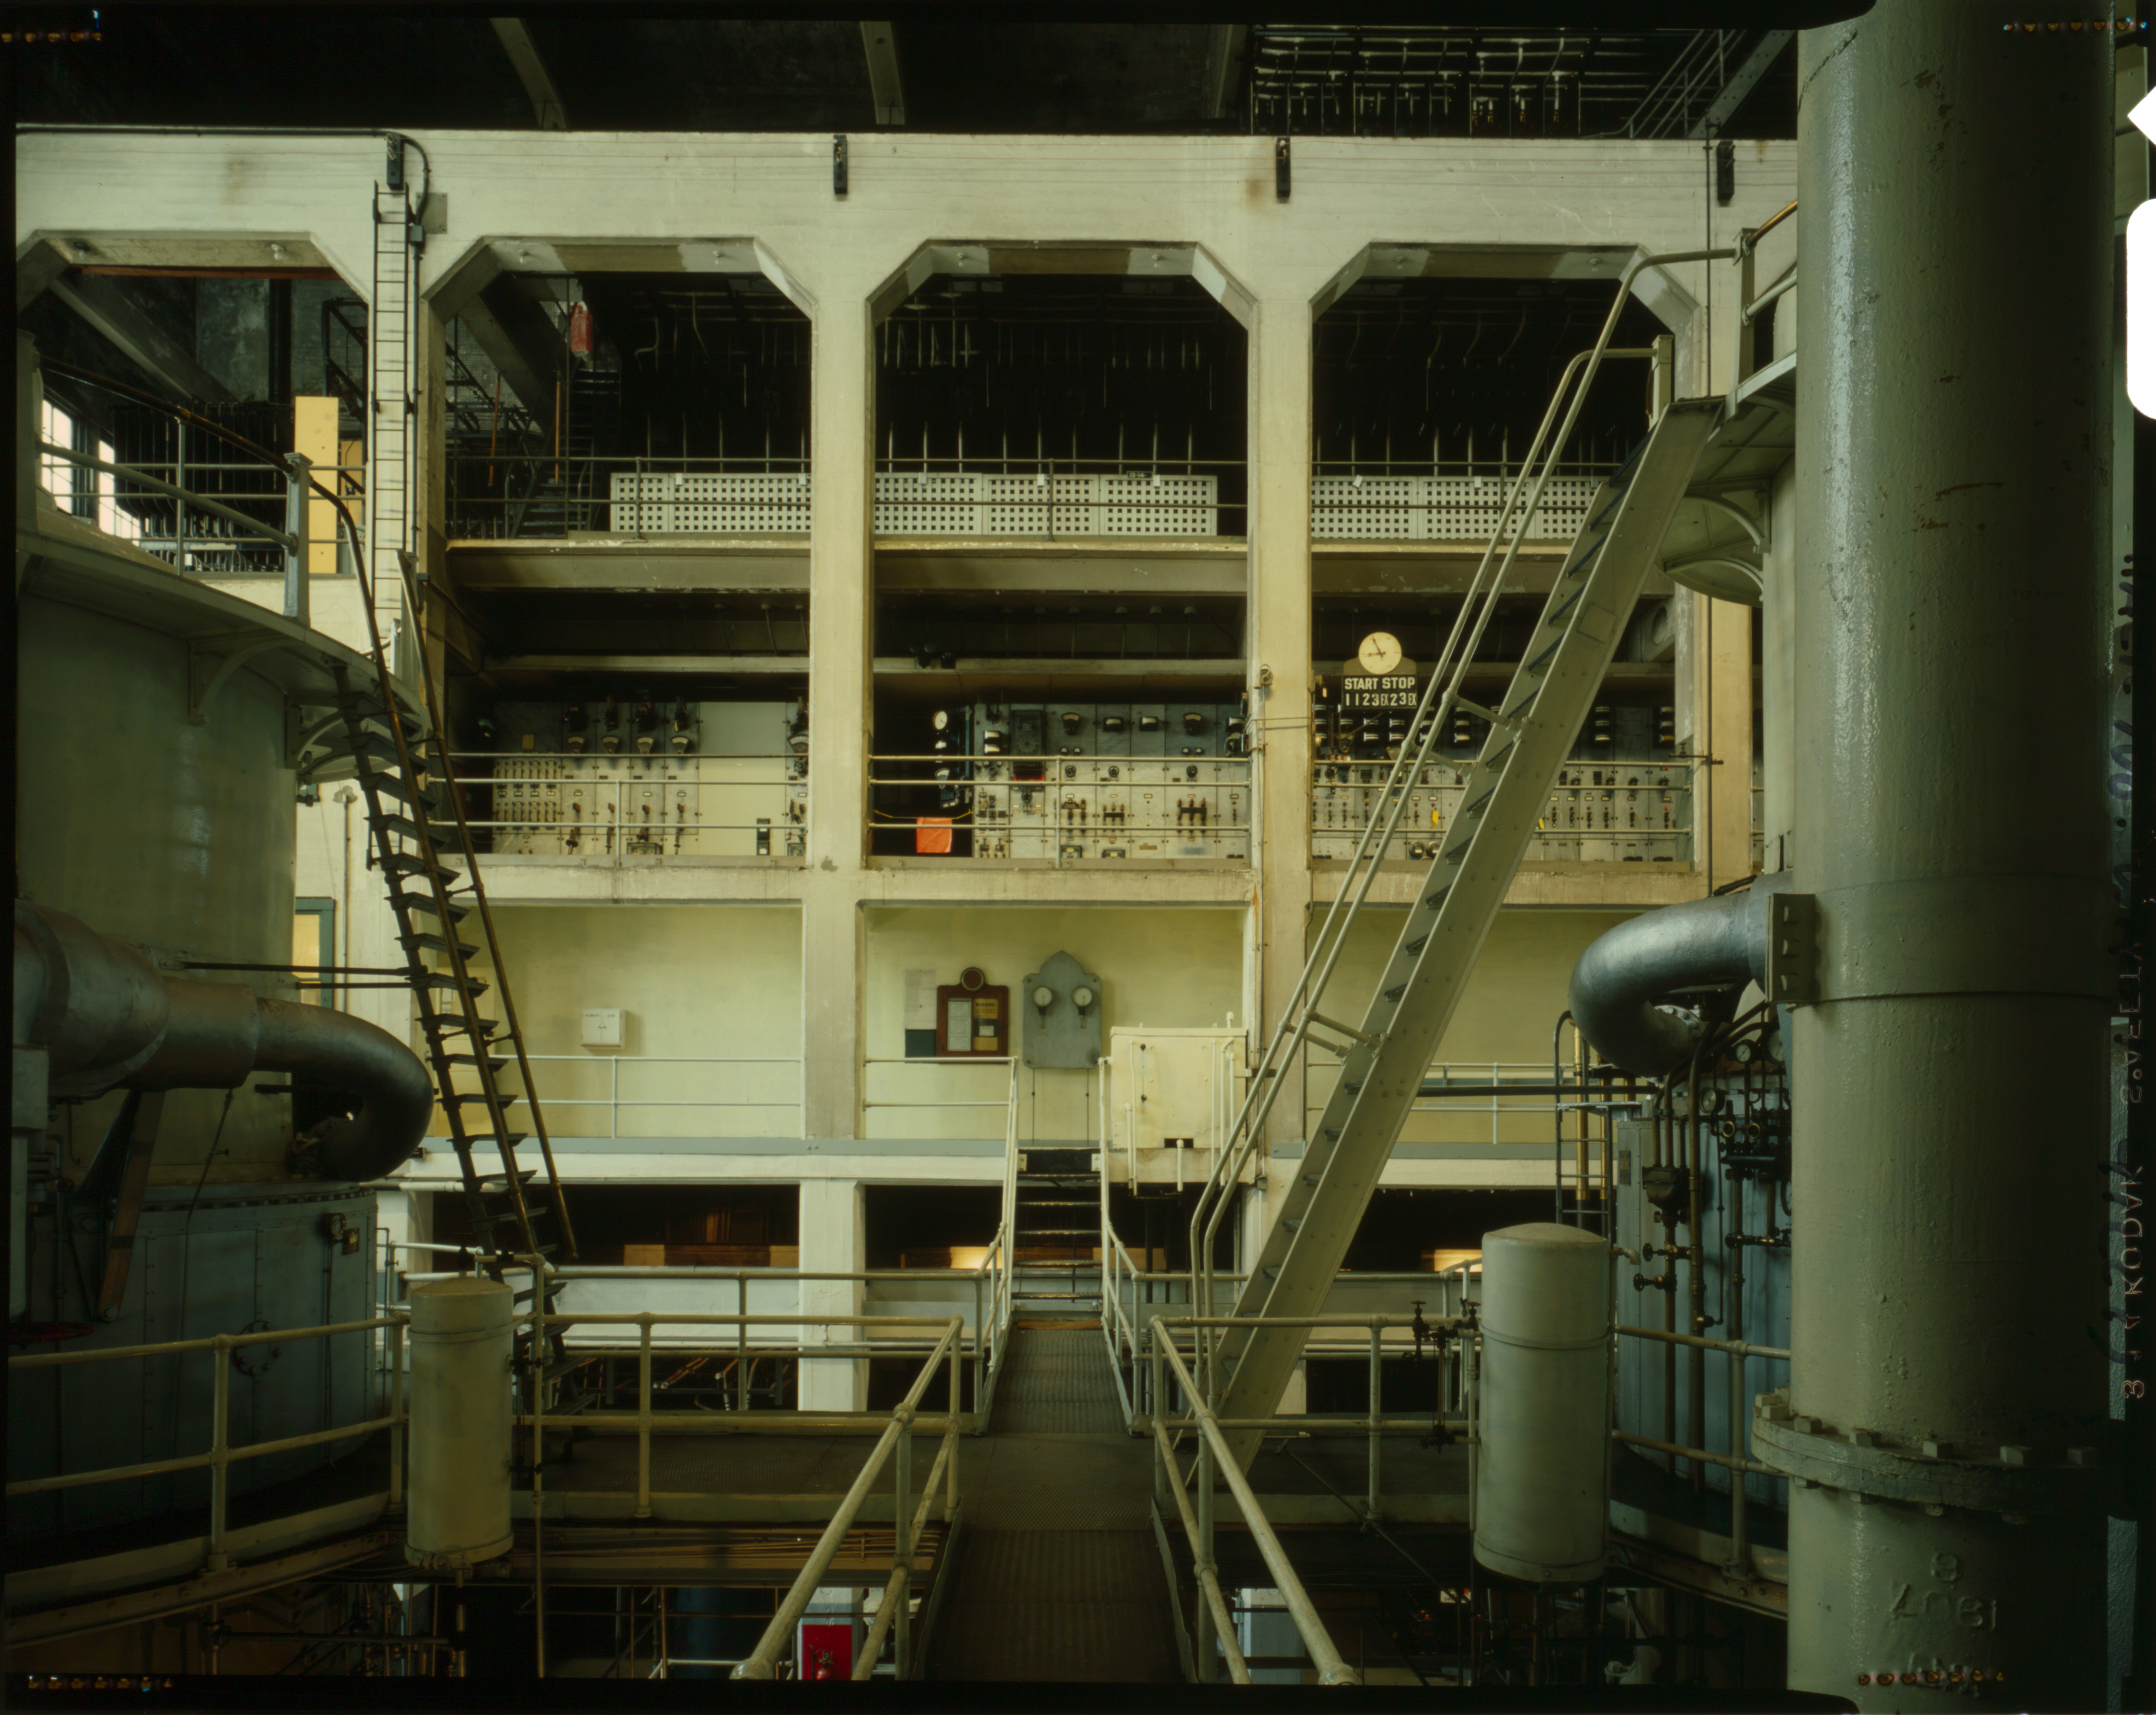 The interior of an industrial facility. Four concrete arches contain three floors of open railings.